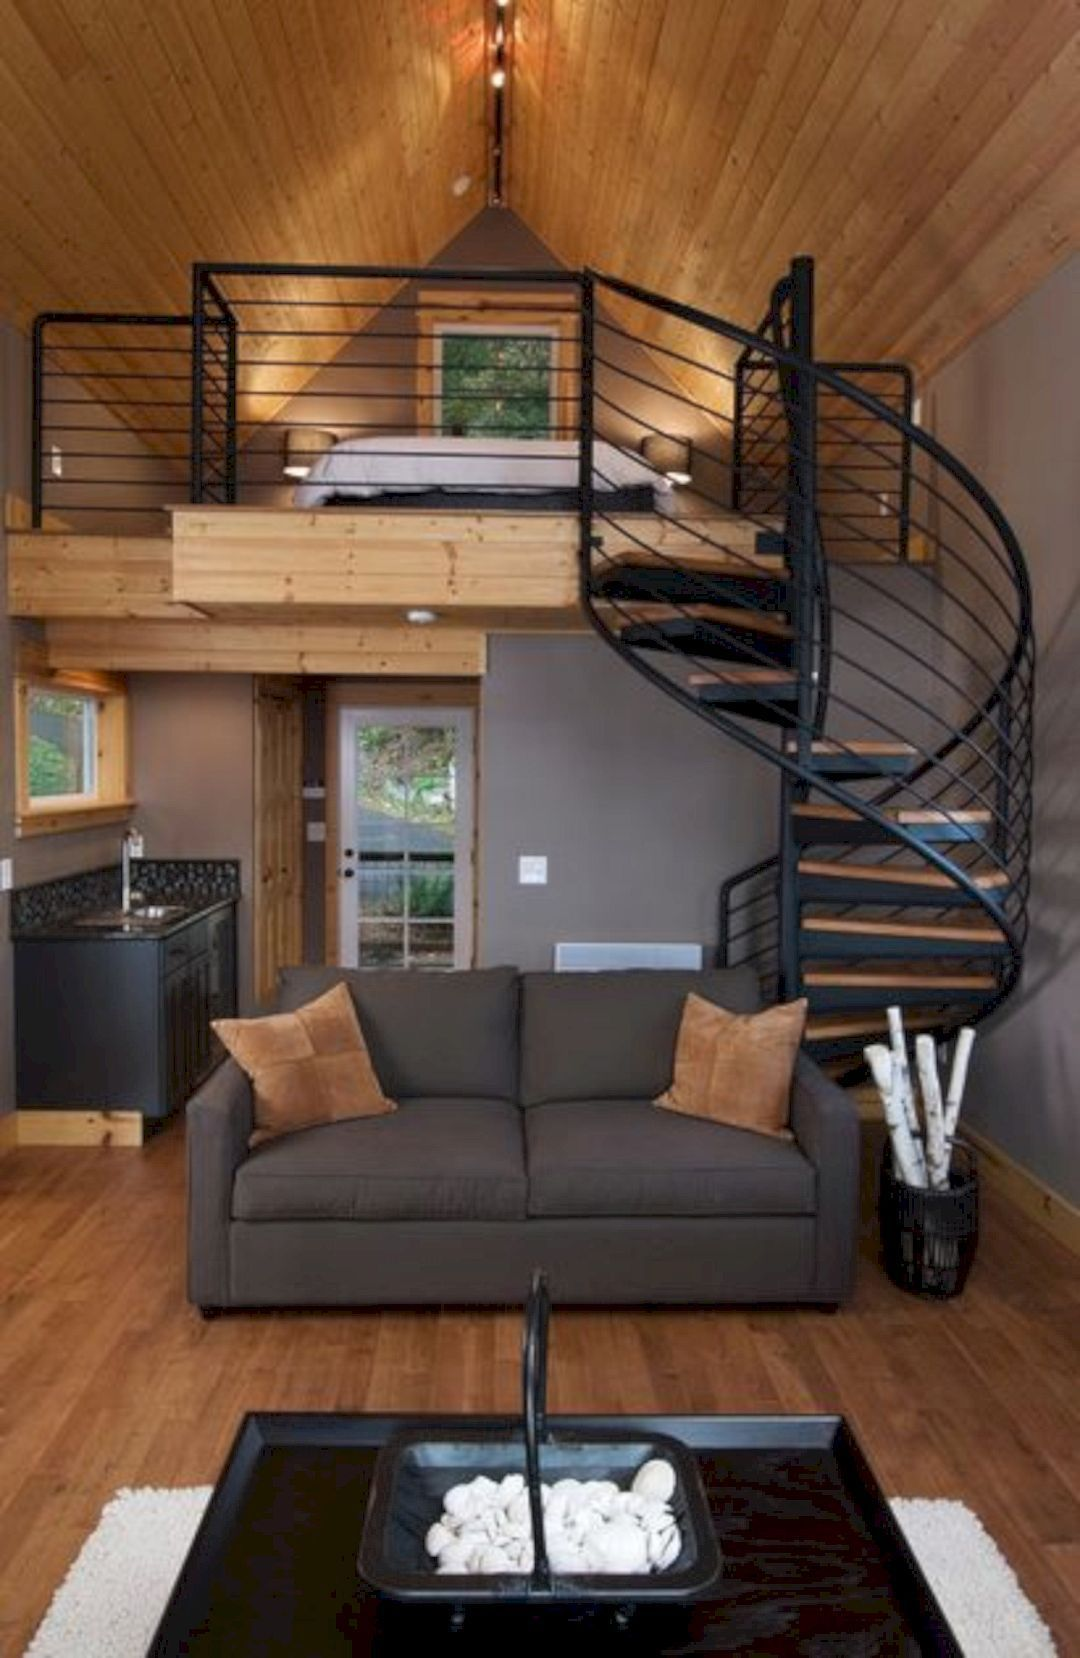 15 Amazing Interior Design Ideas For Modern Loft Tiny House Interior Design Tiny House Living Tiny House Design